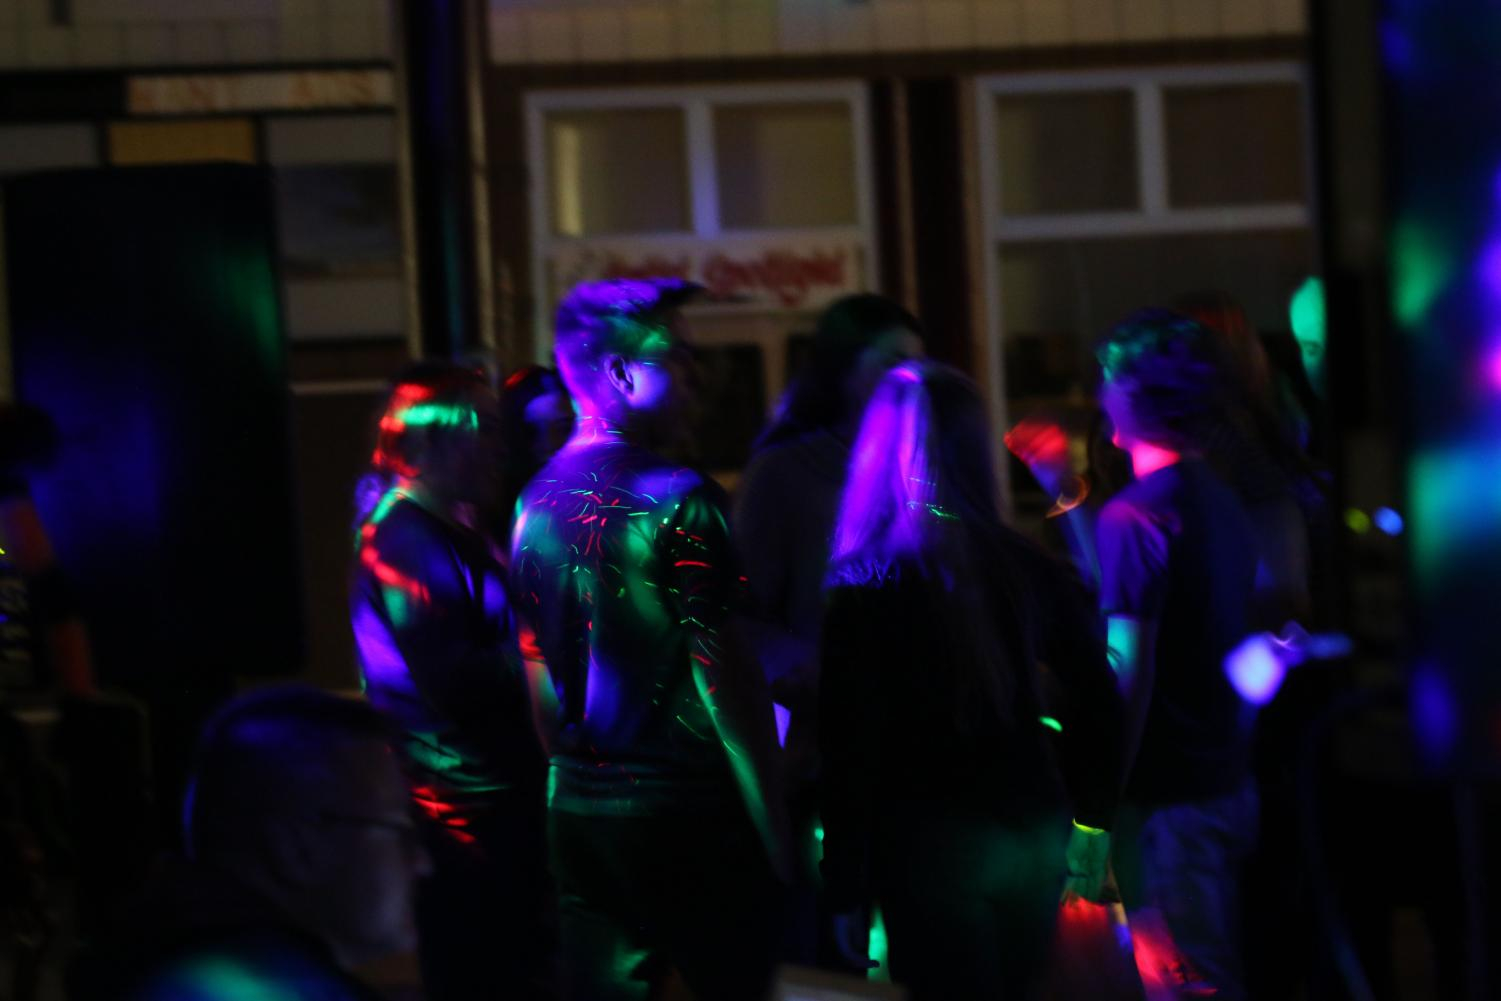 BOO! Students dance and sing theirs fears away at the light-filled Halloween dance party.